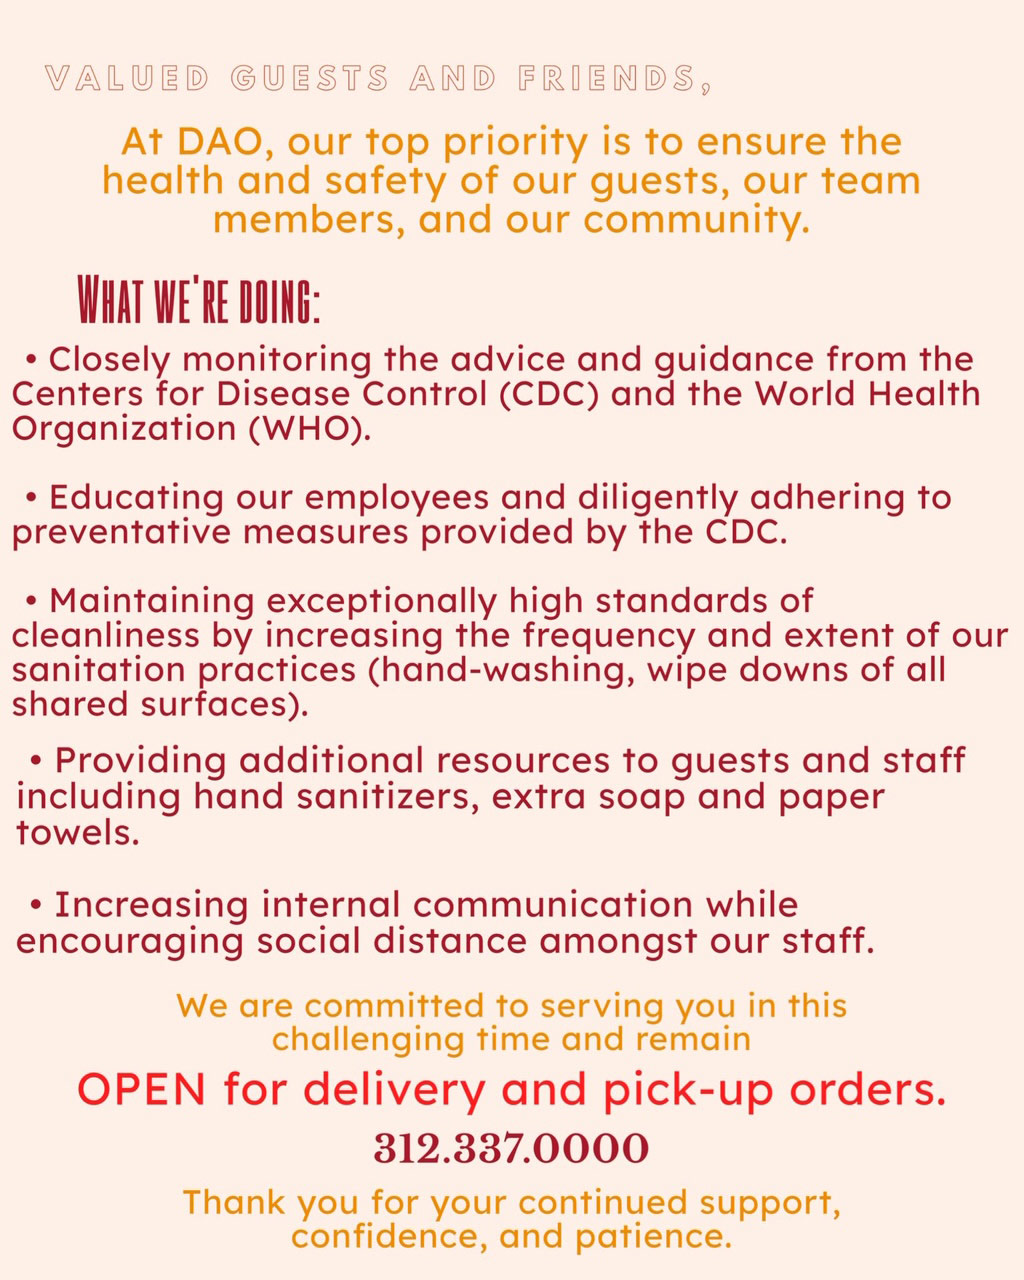 At DAO, our top priority is to ensure the health and safety of our guests